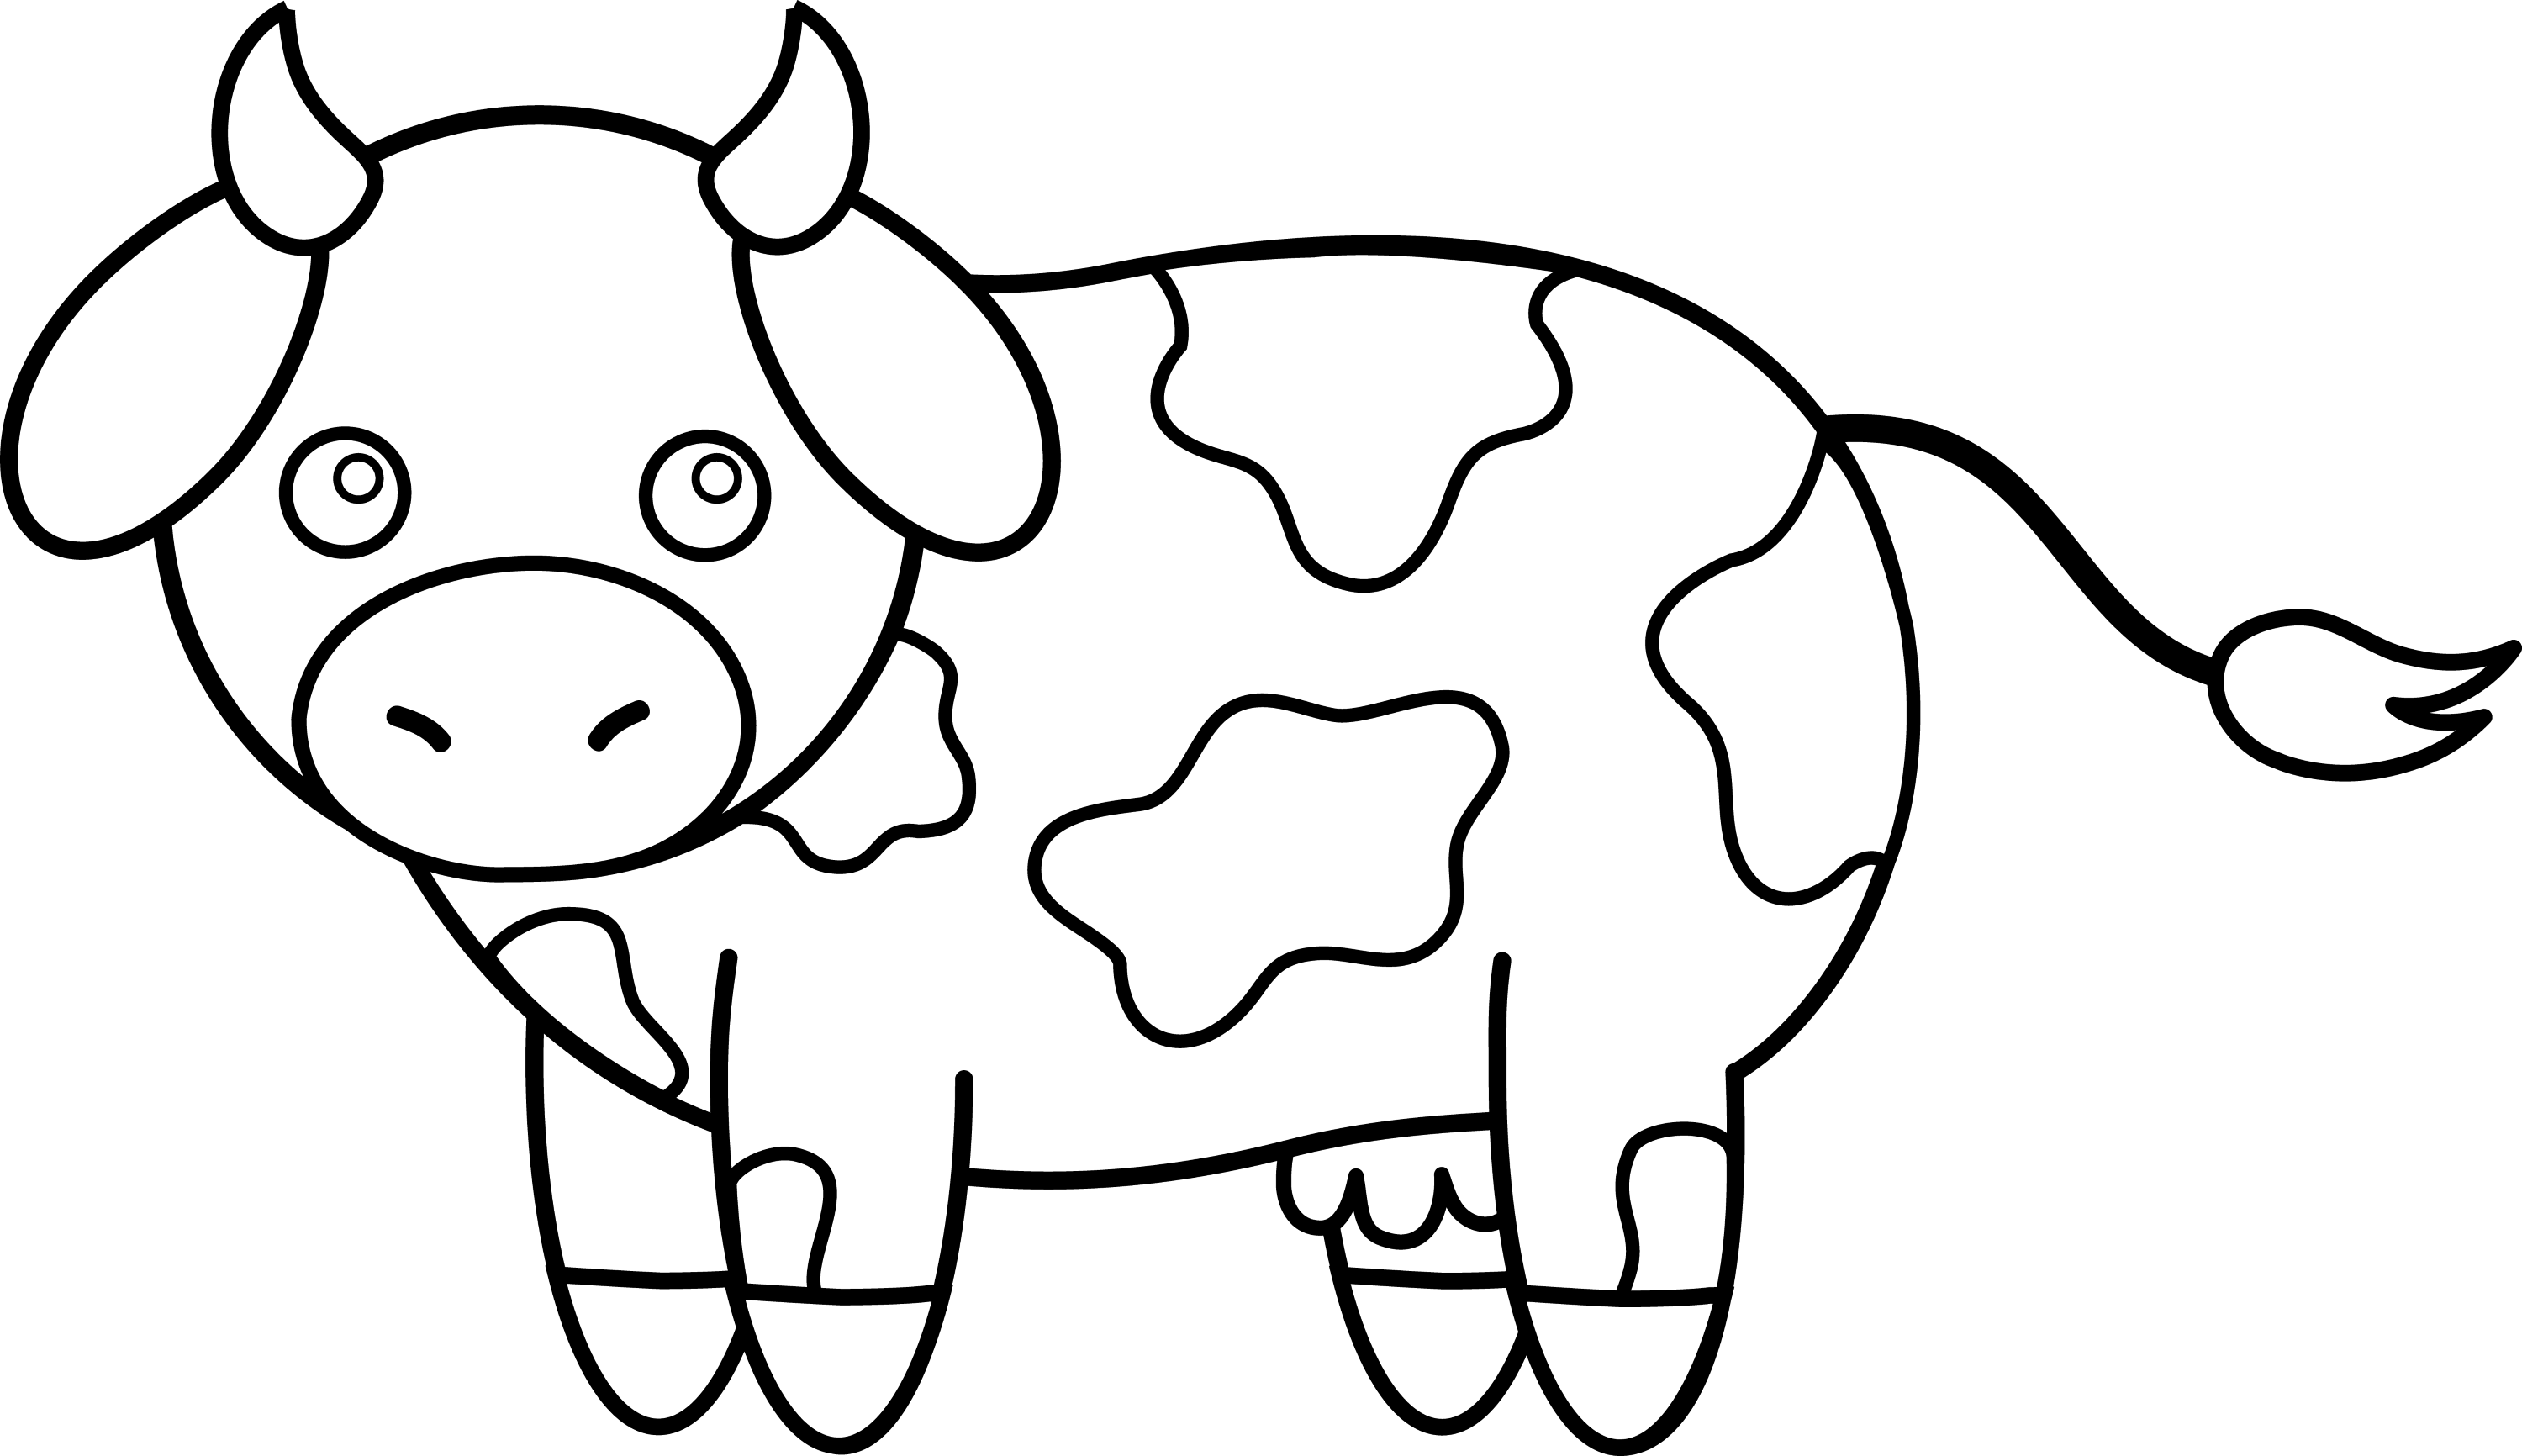 cow coloring pics cow pattern for preschool pics coloring cow